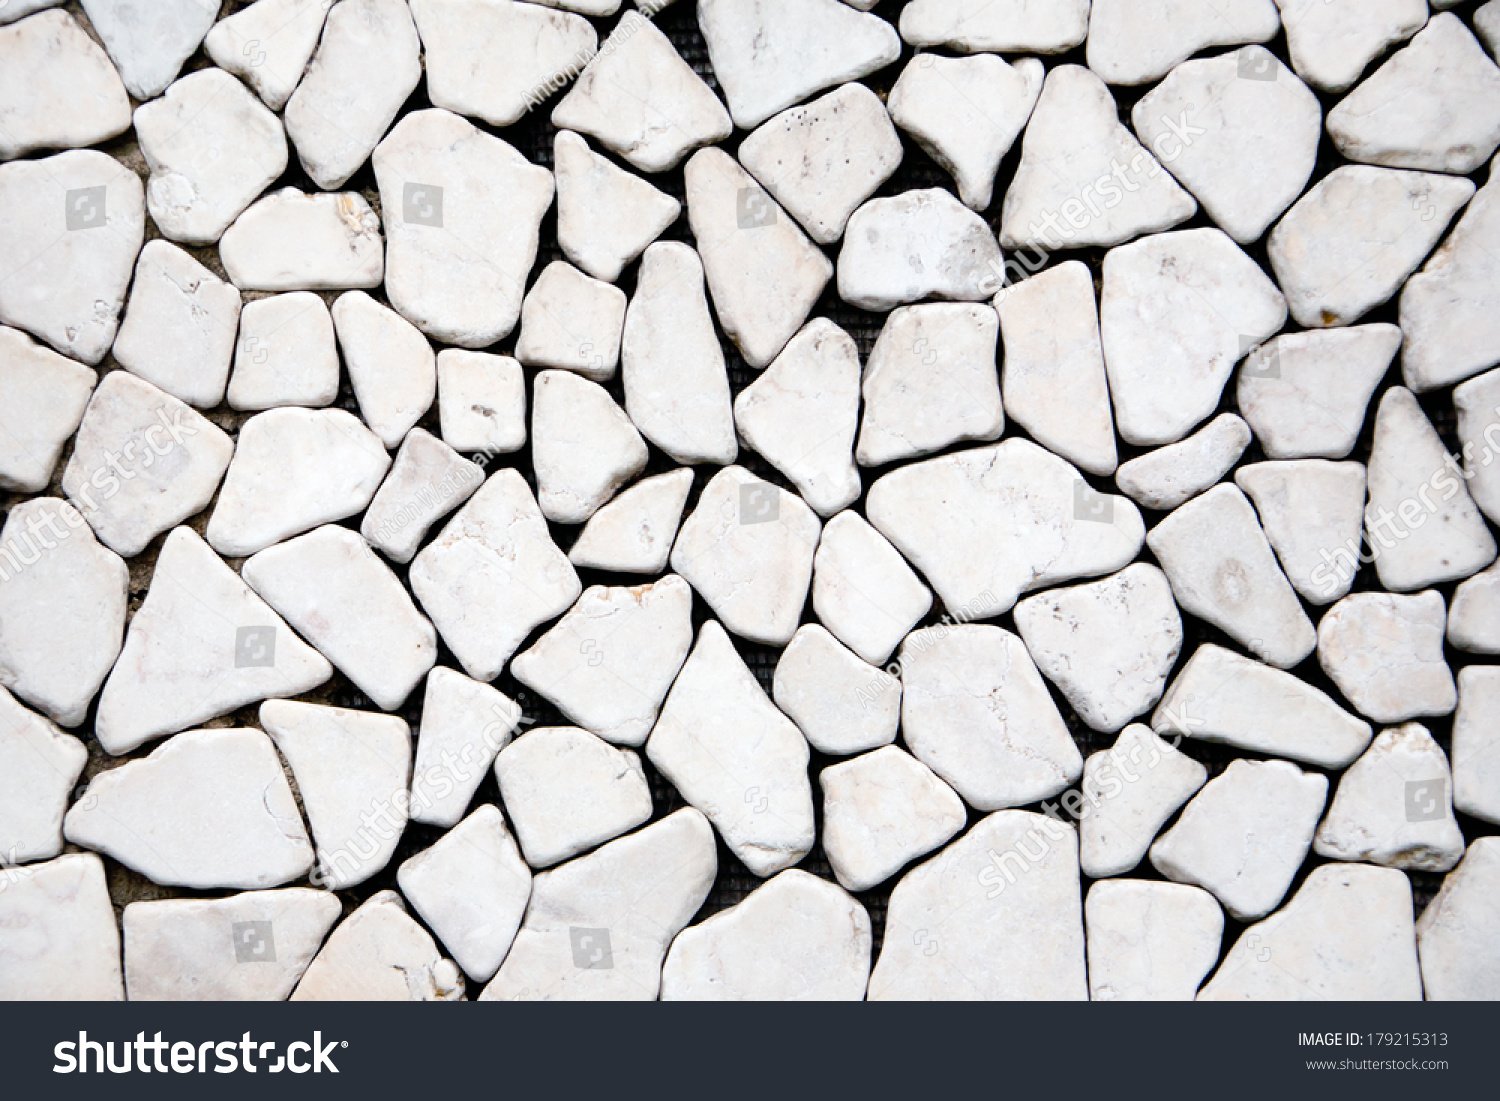 Smooth shaped white stones surface texture background stock photo - Triangle Pebble Stone Flooring Texture